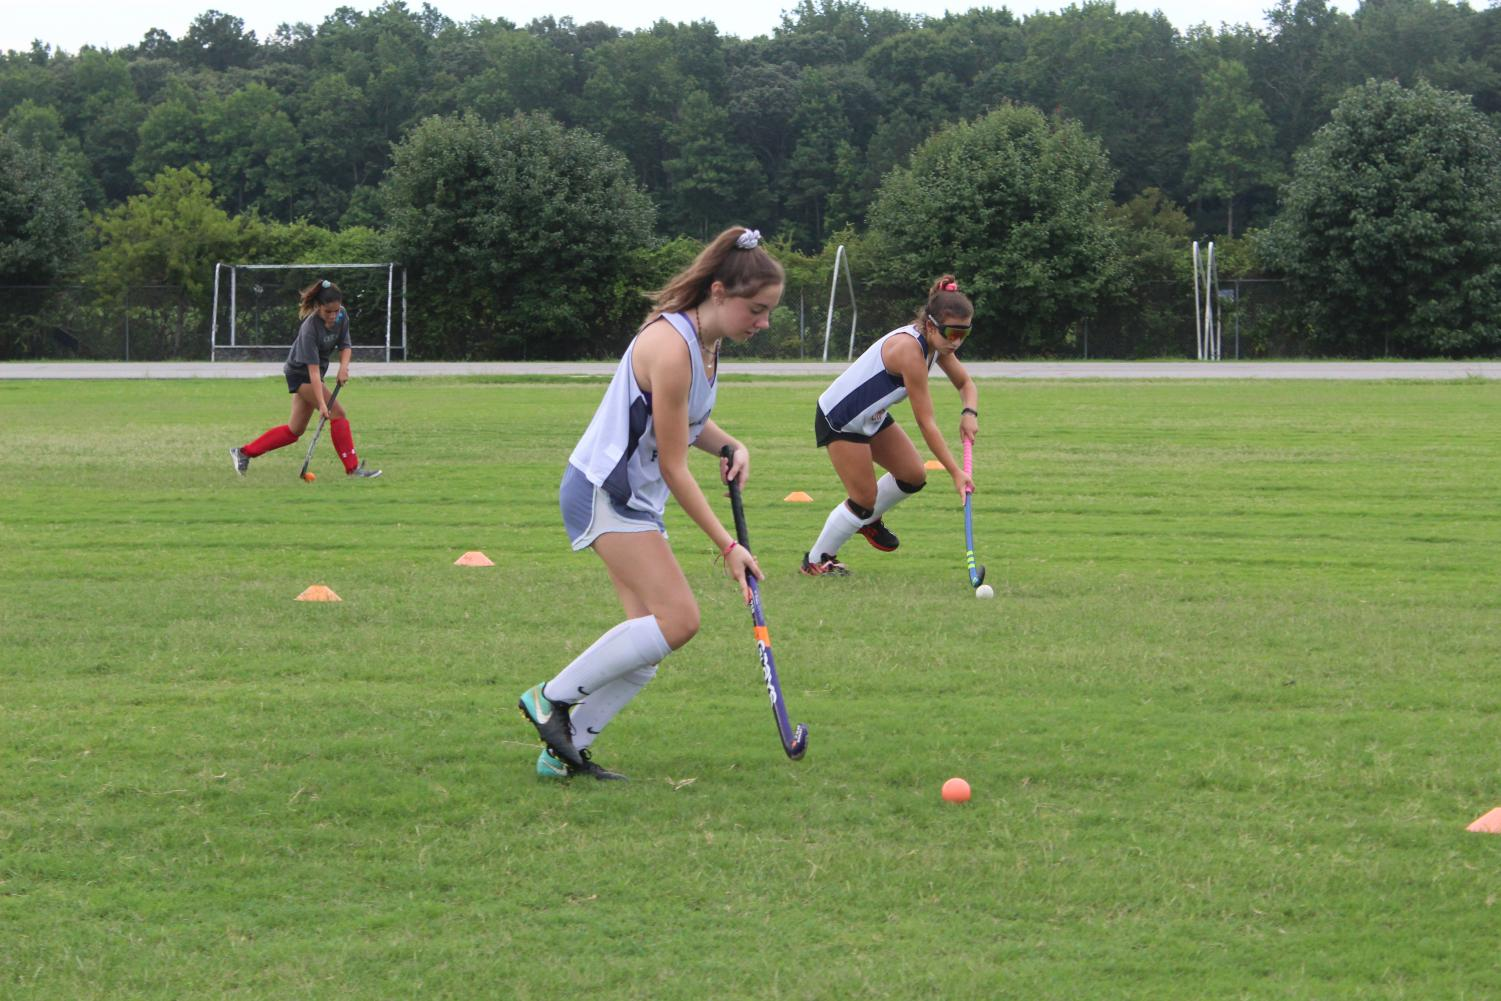 Junior Kelly McCarty and sophomore Kaitlyn Hertz dribble the ball during a conditioning drill on July 19.